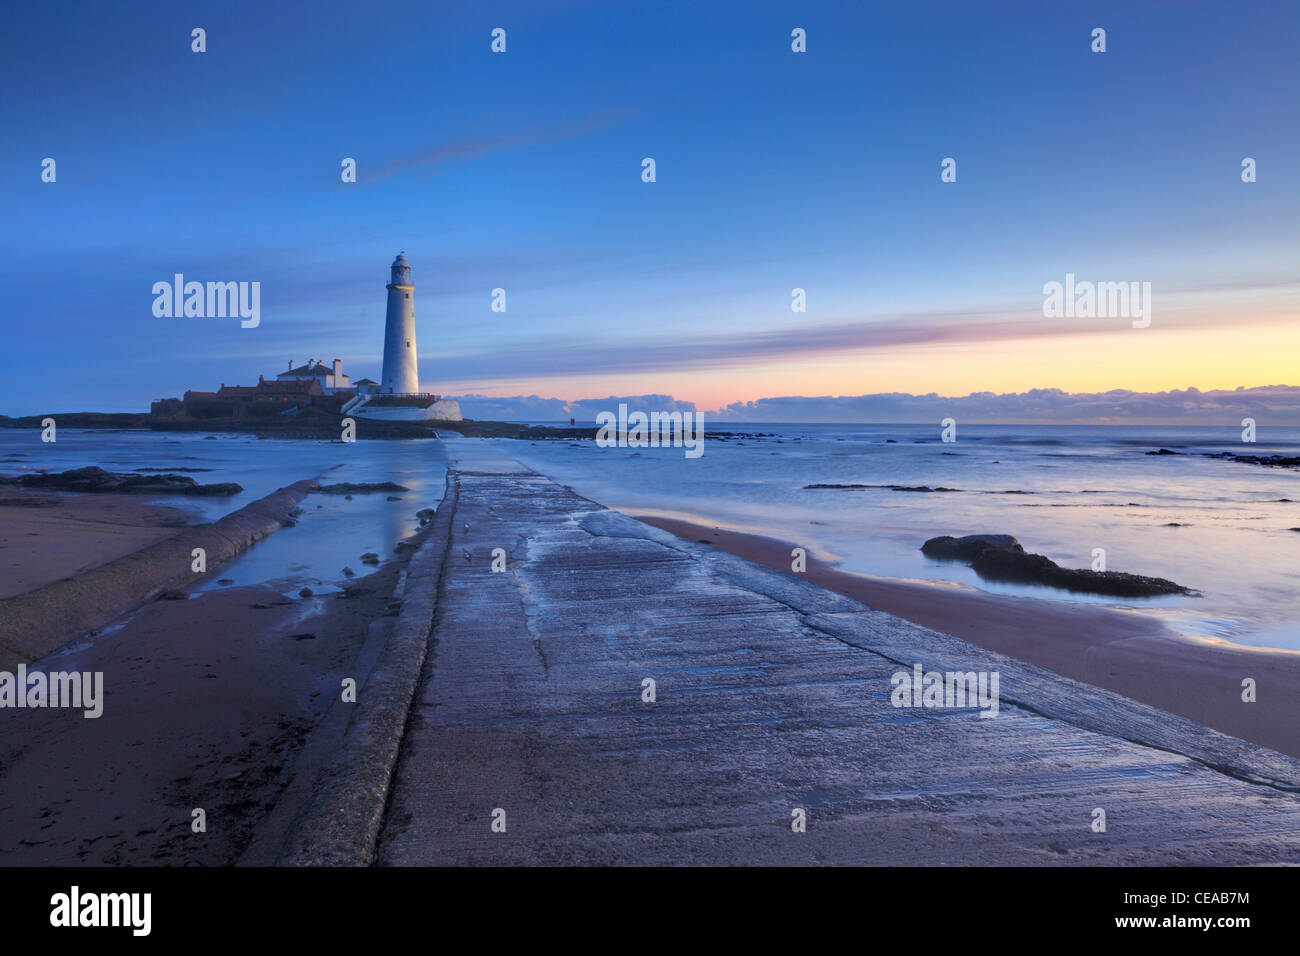 Twilight over St Marys lighthouse at Whitley Bay North Tyneside, Tyne and Wear, Northumberland, England - Stock Image